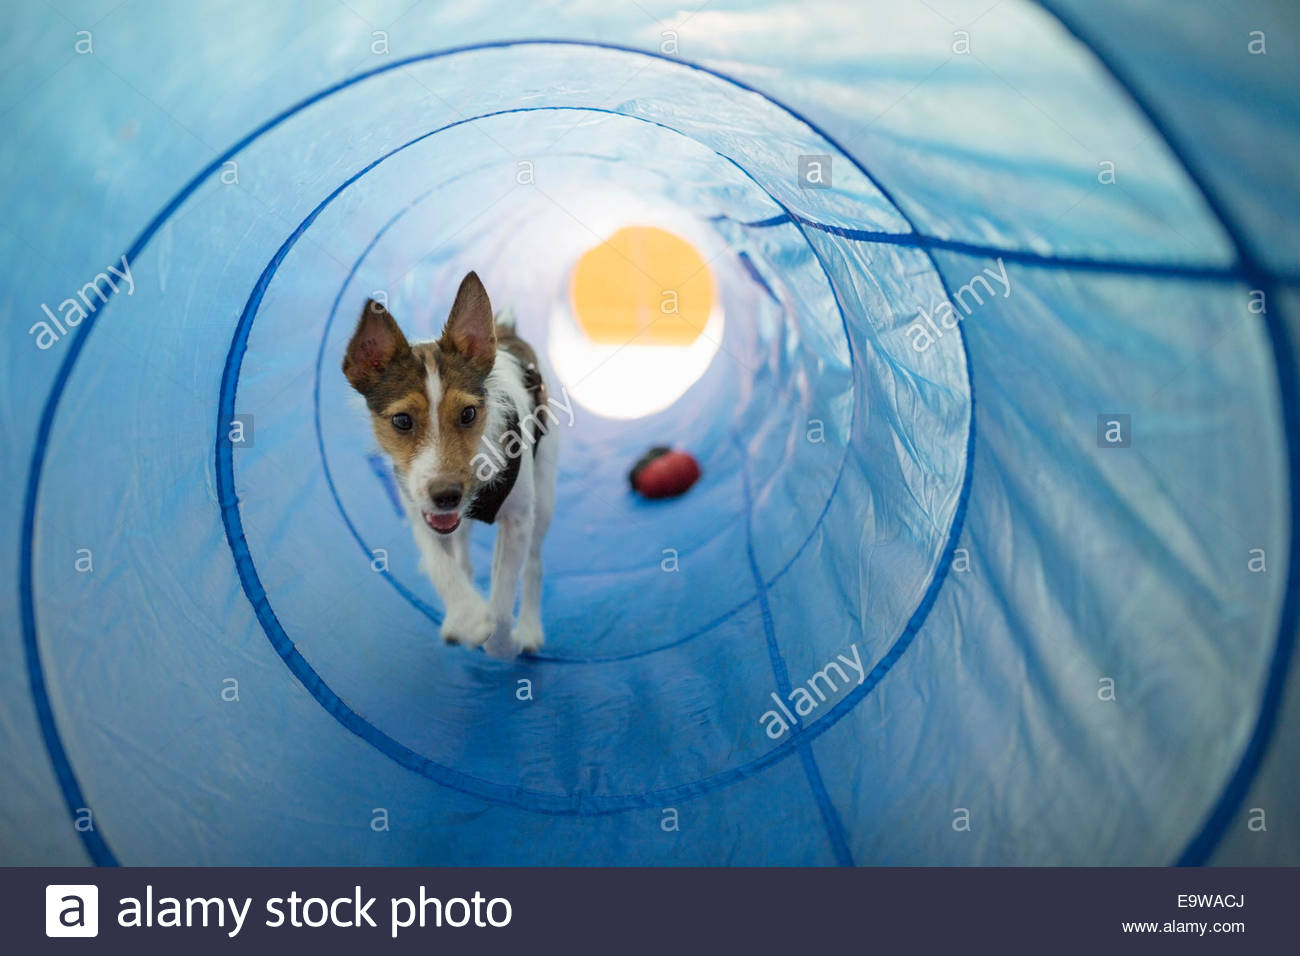 Dog playing in agility tunnel - Stock Image